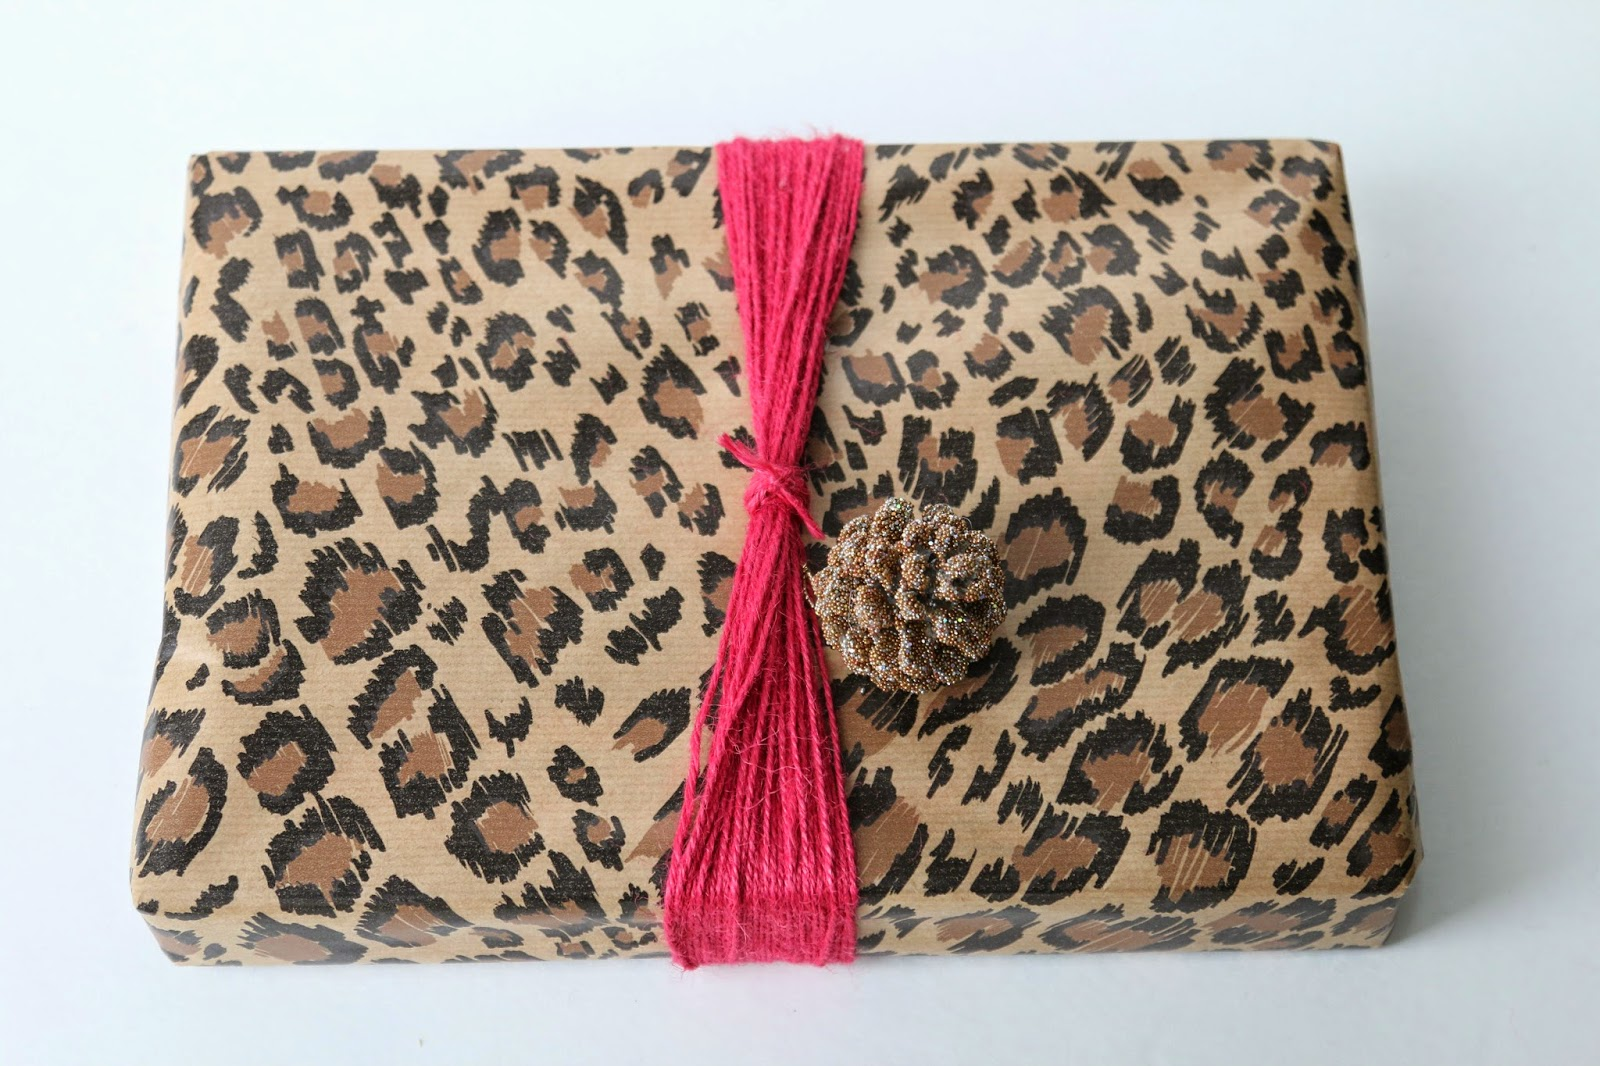 Holiday gift wrapping with animal print paper and raspberry yarn